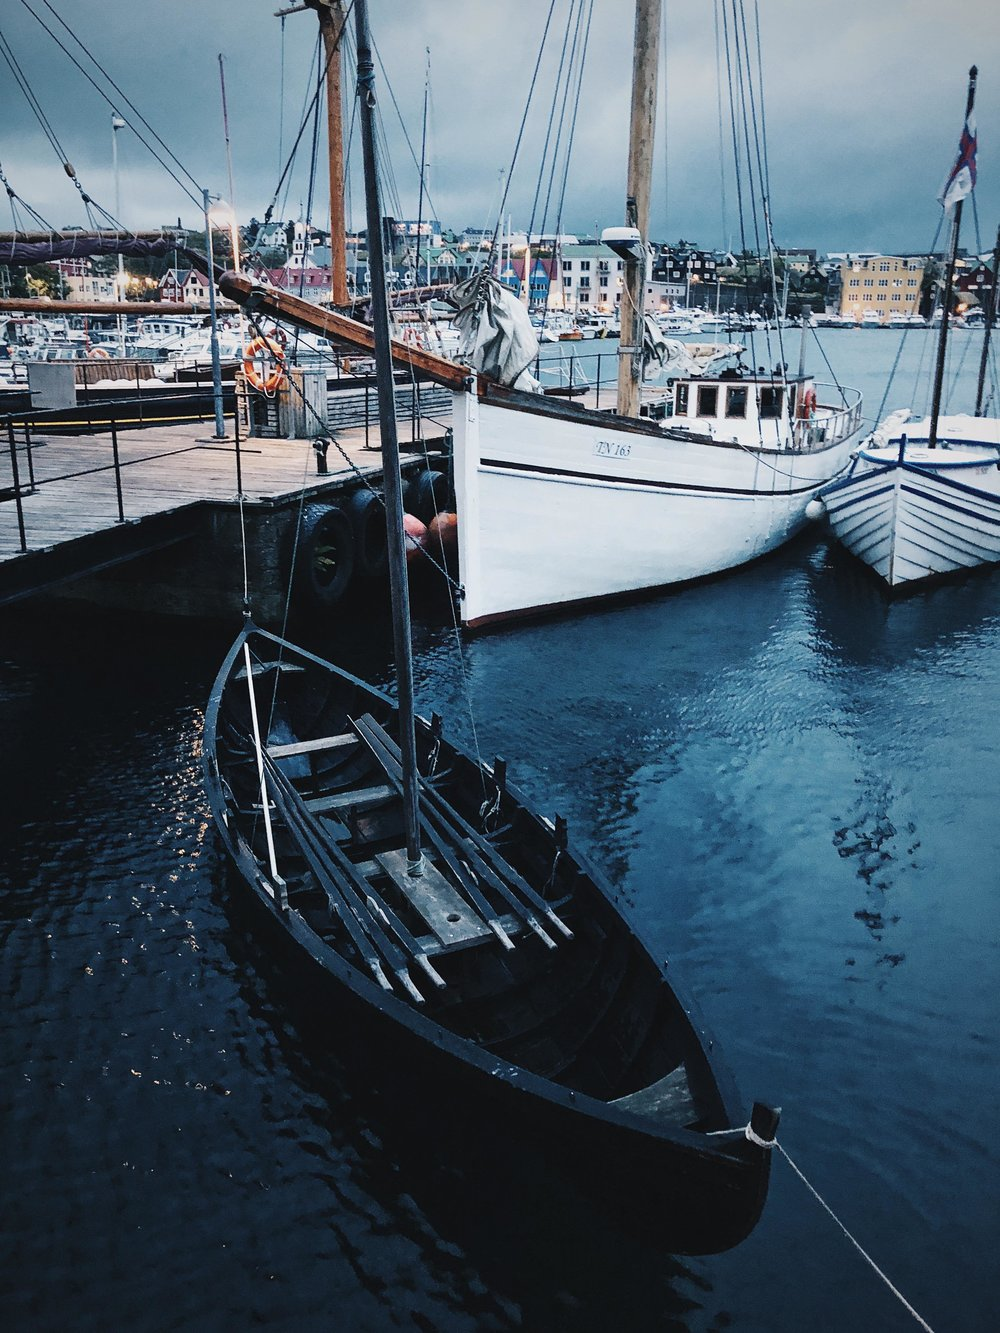 Old, new, big and small… all types of boats in the harbors of Tórshavn.